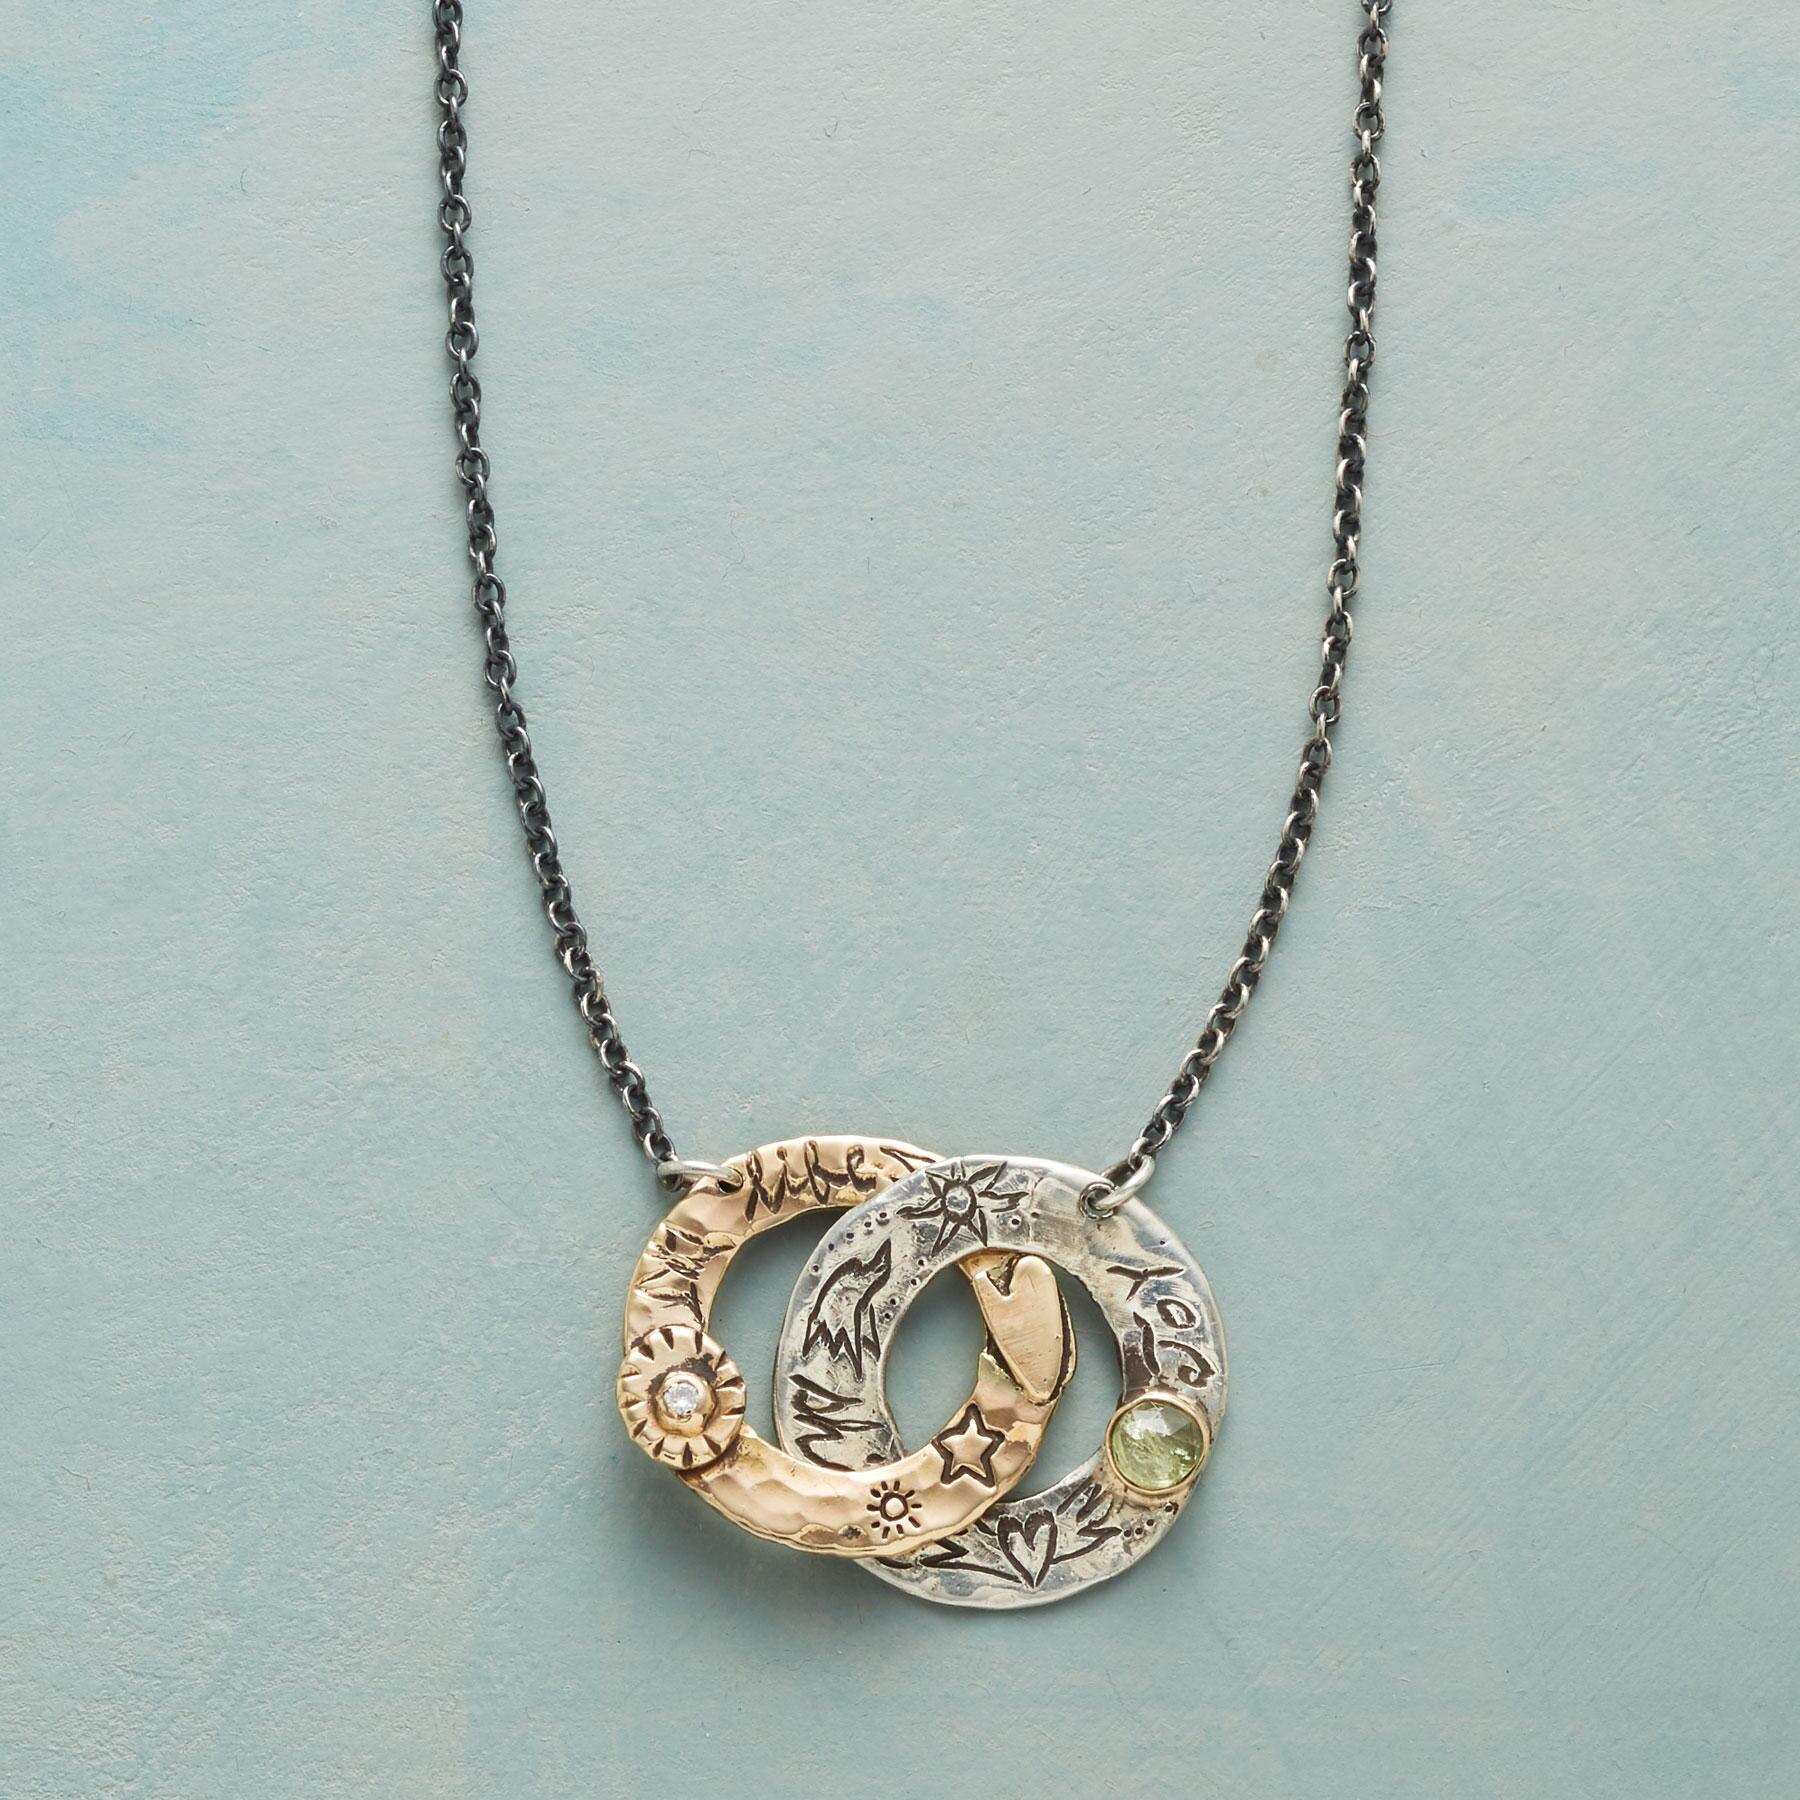 COMPLEMENTS NECKLACE: View 1